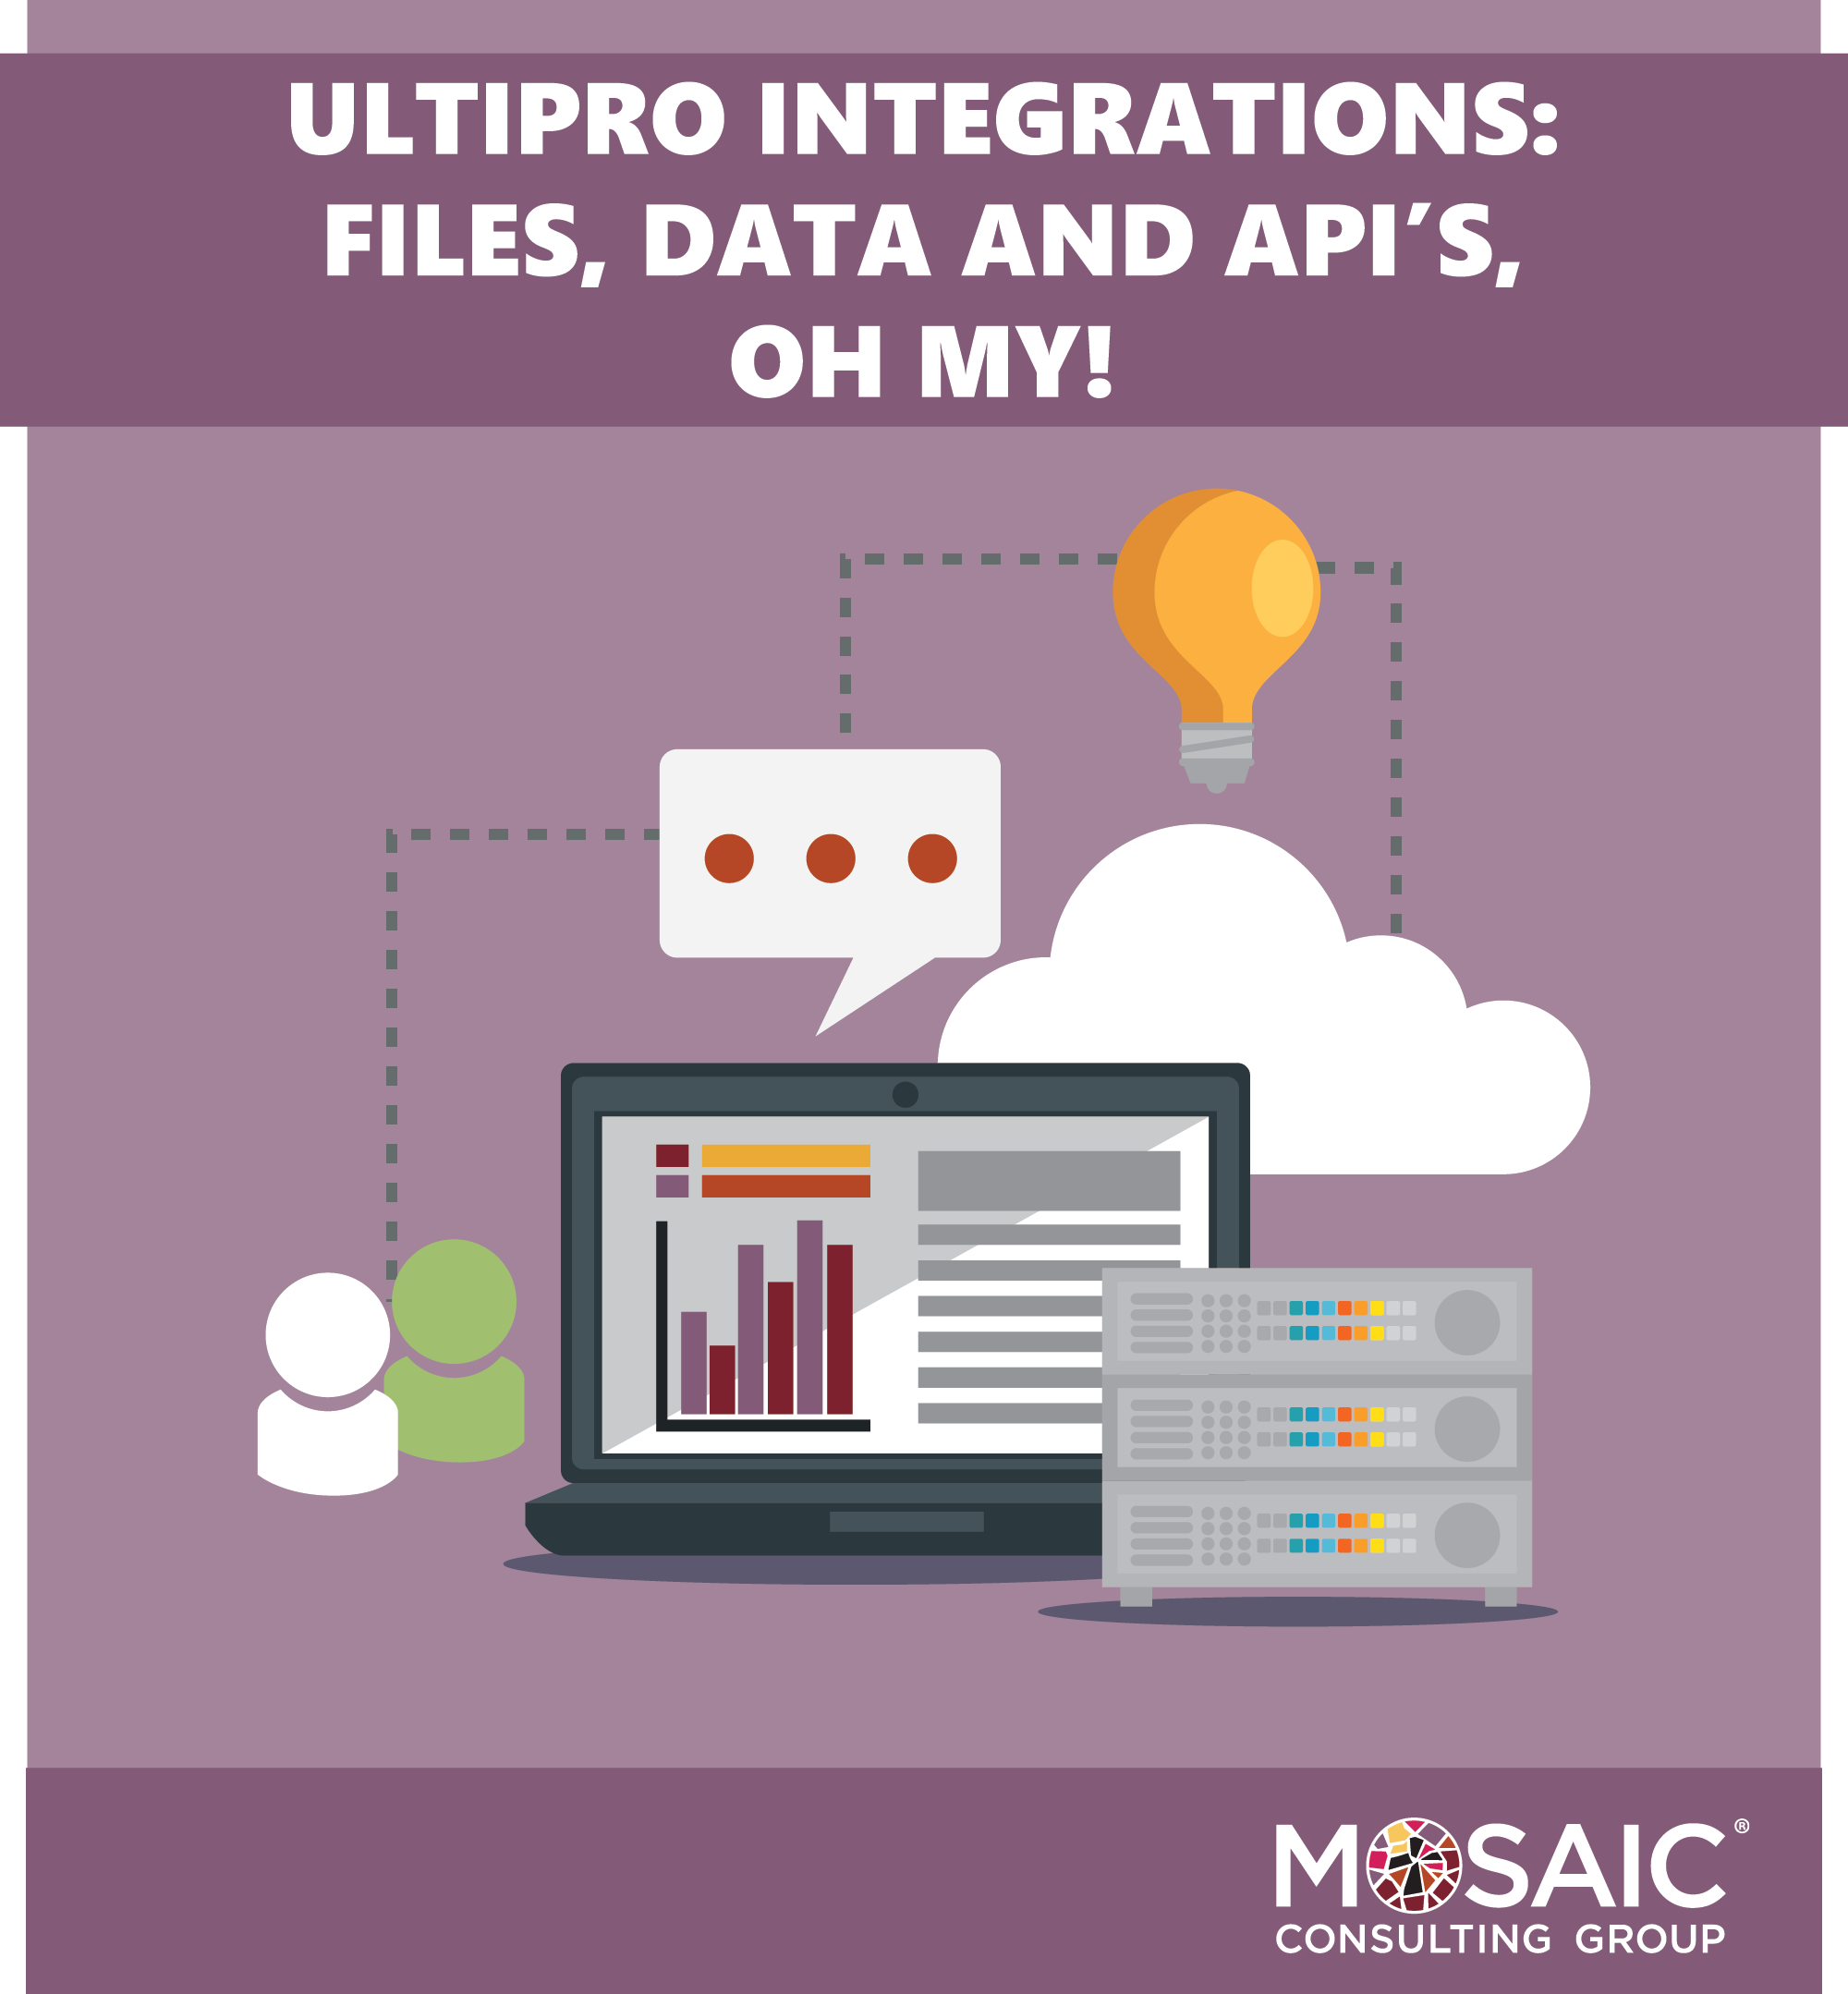 UltiPro Integrations: Files, Data and API's, Oh My!